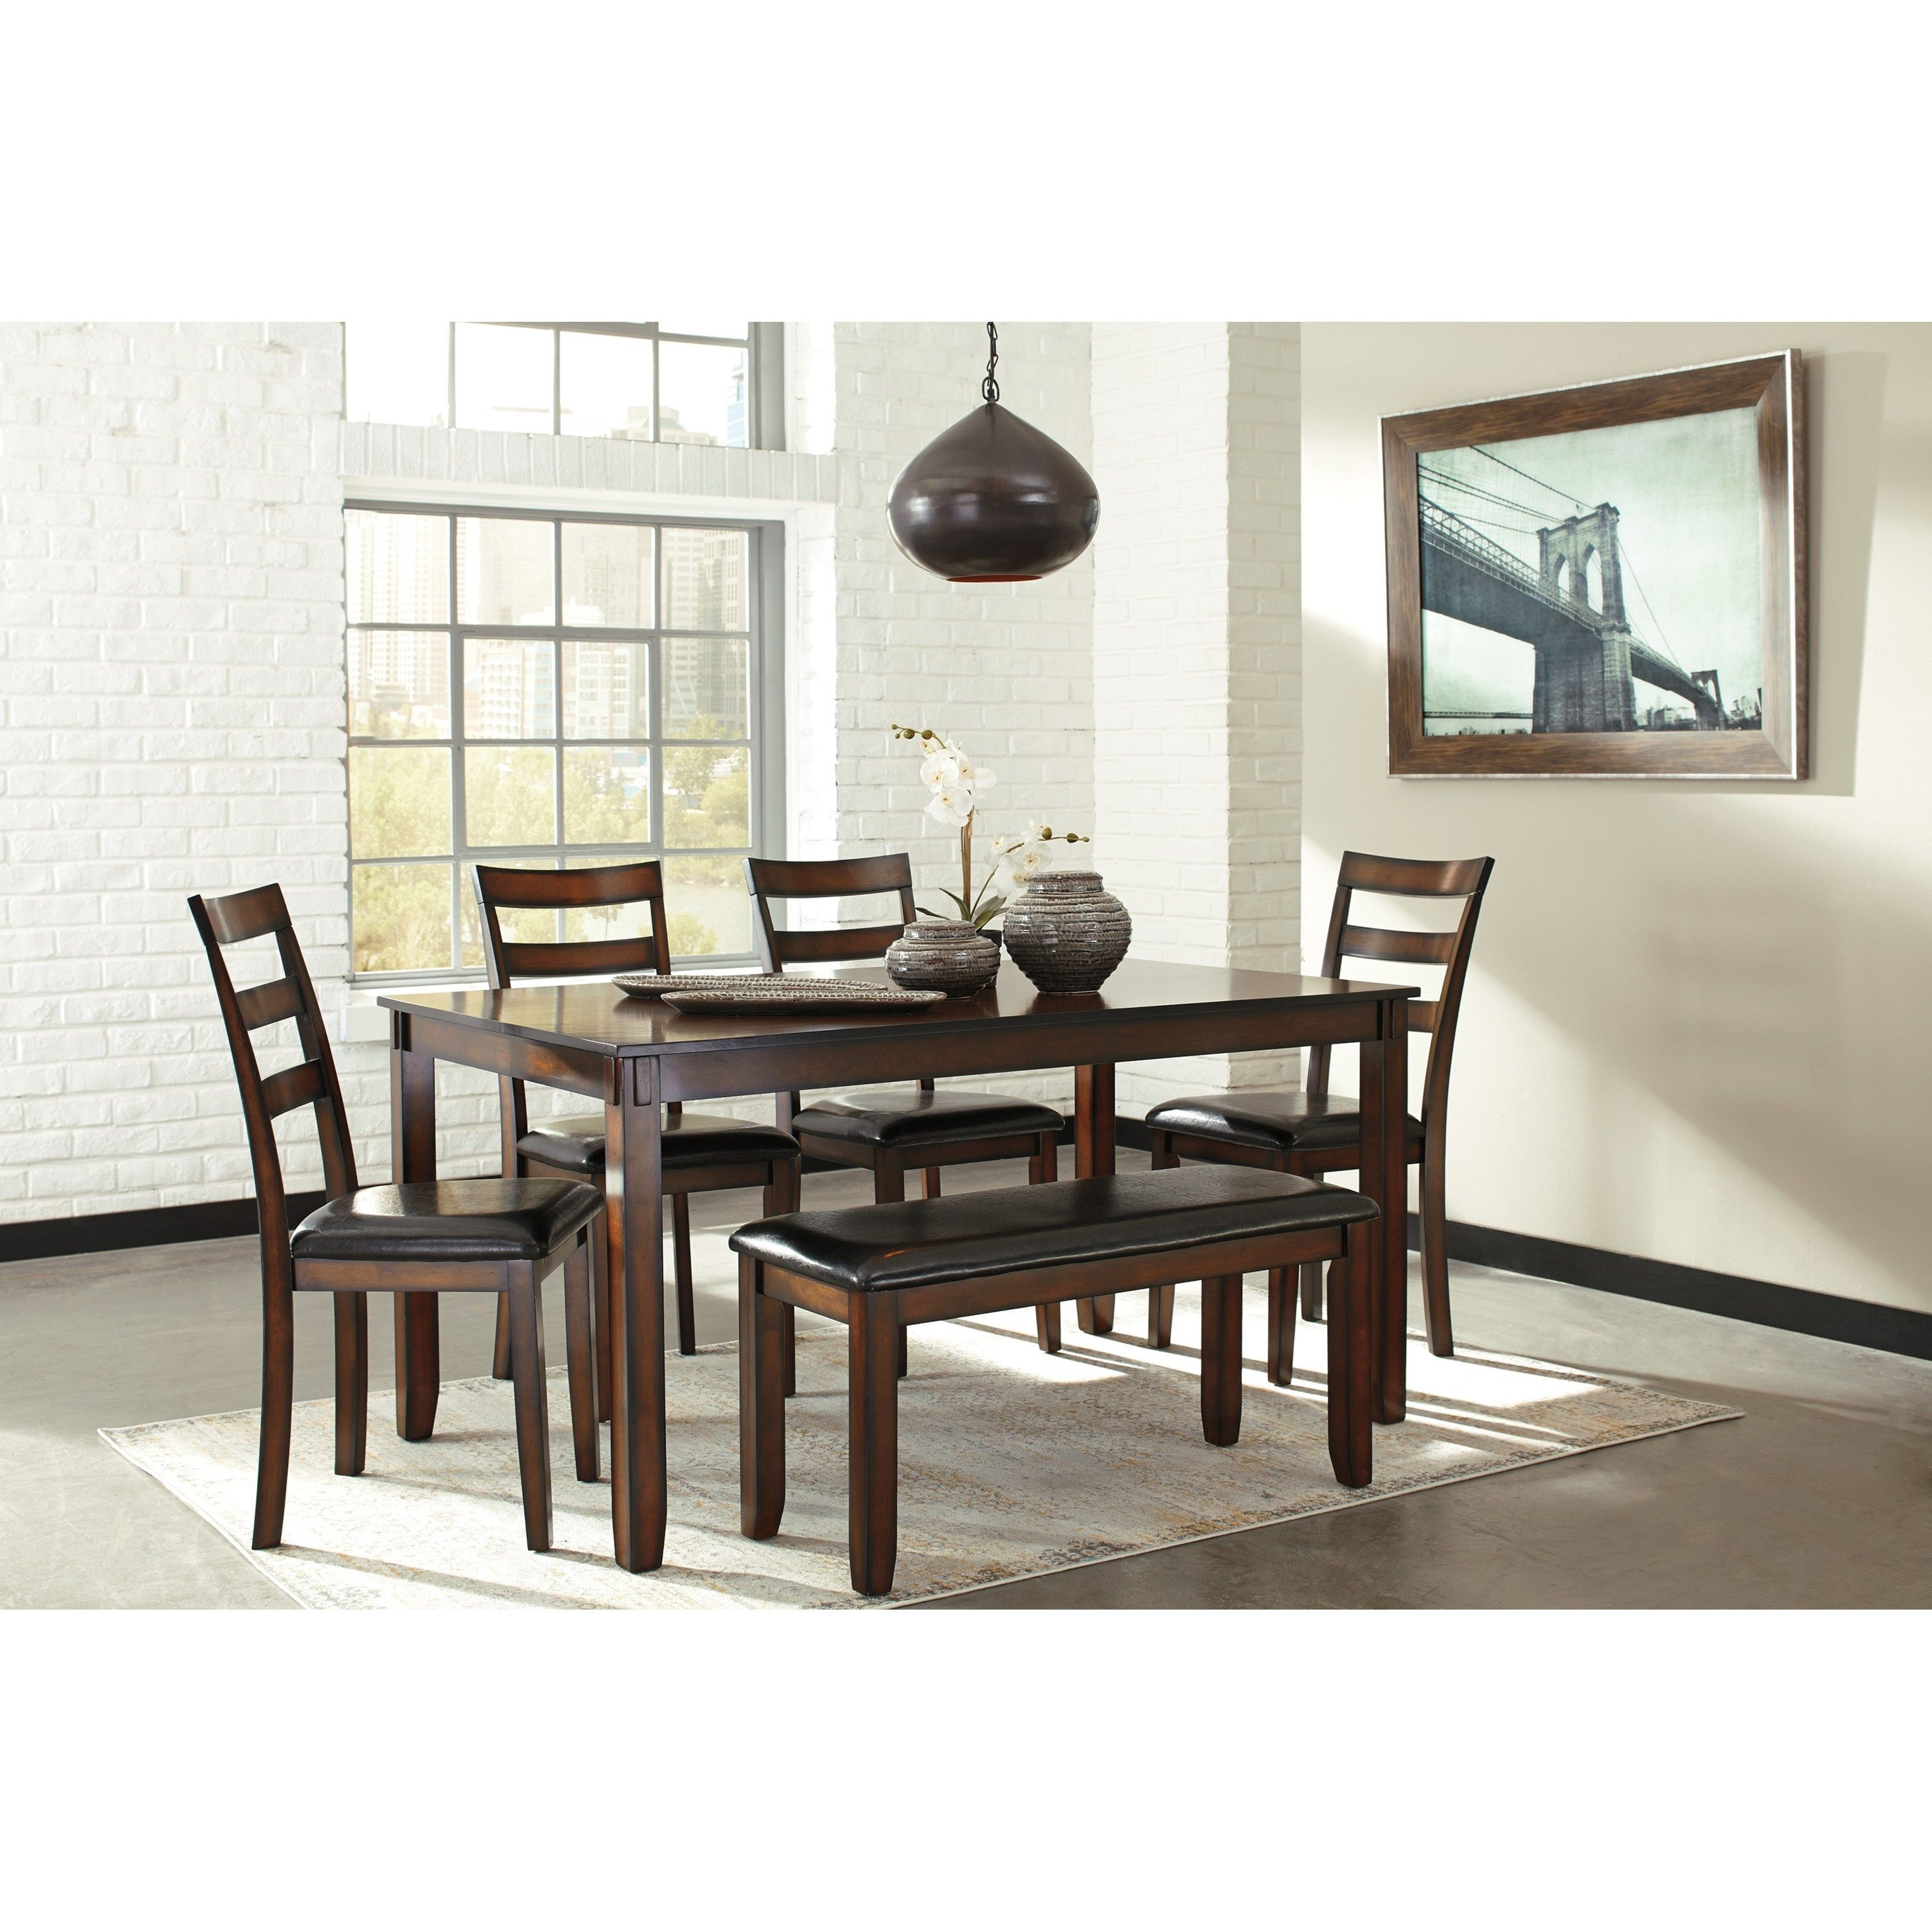 Burnished Brown 6 Piece Dining Table Set With Bench Dining Room